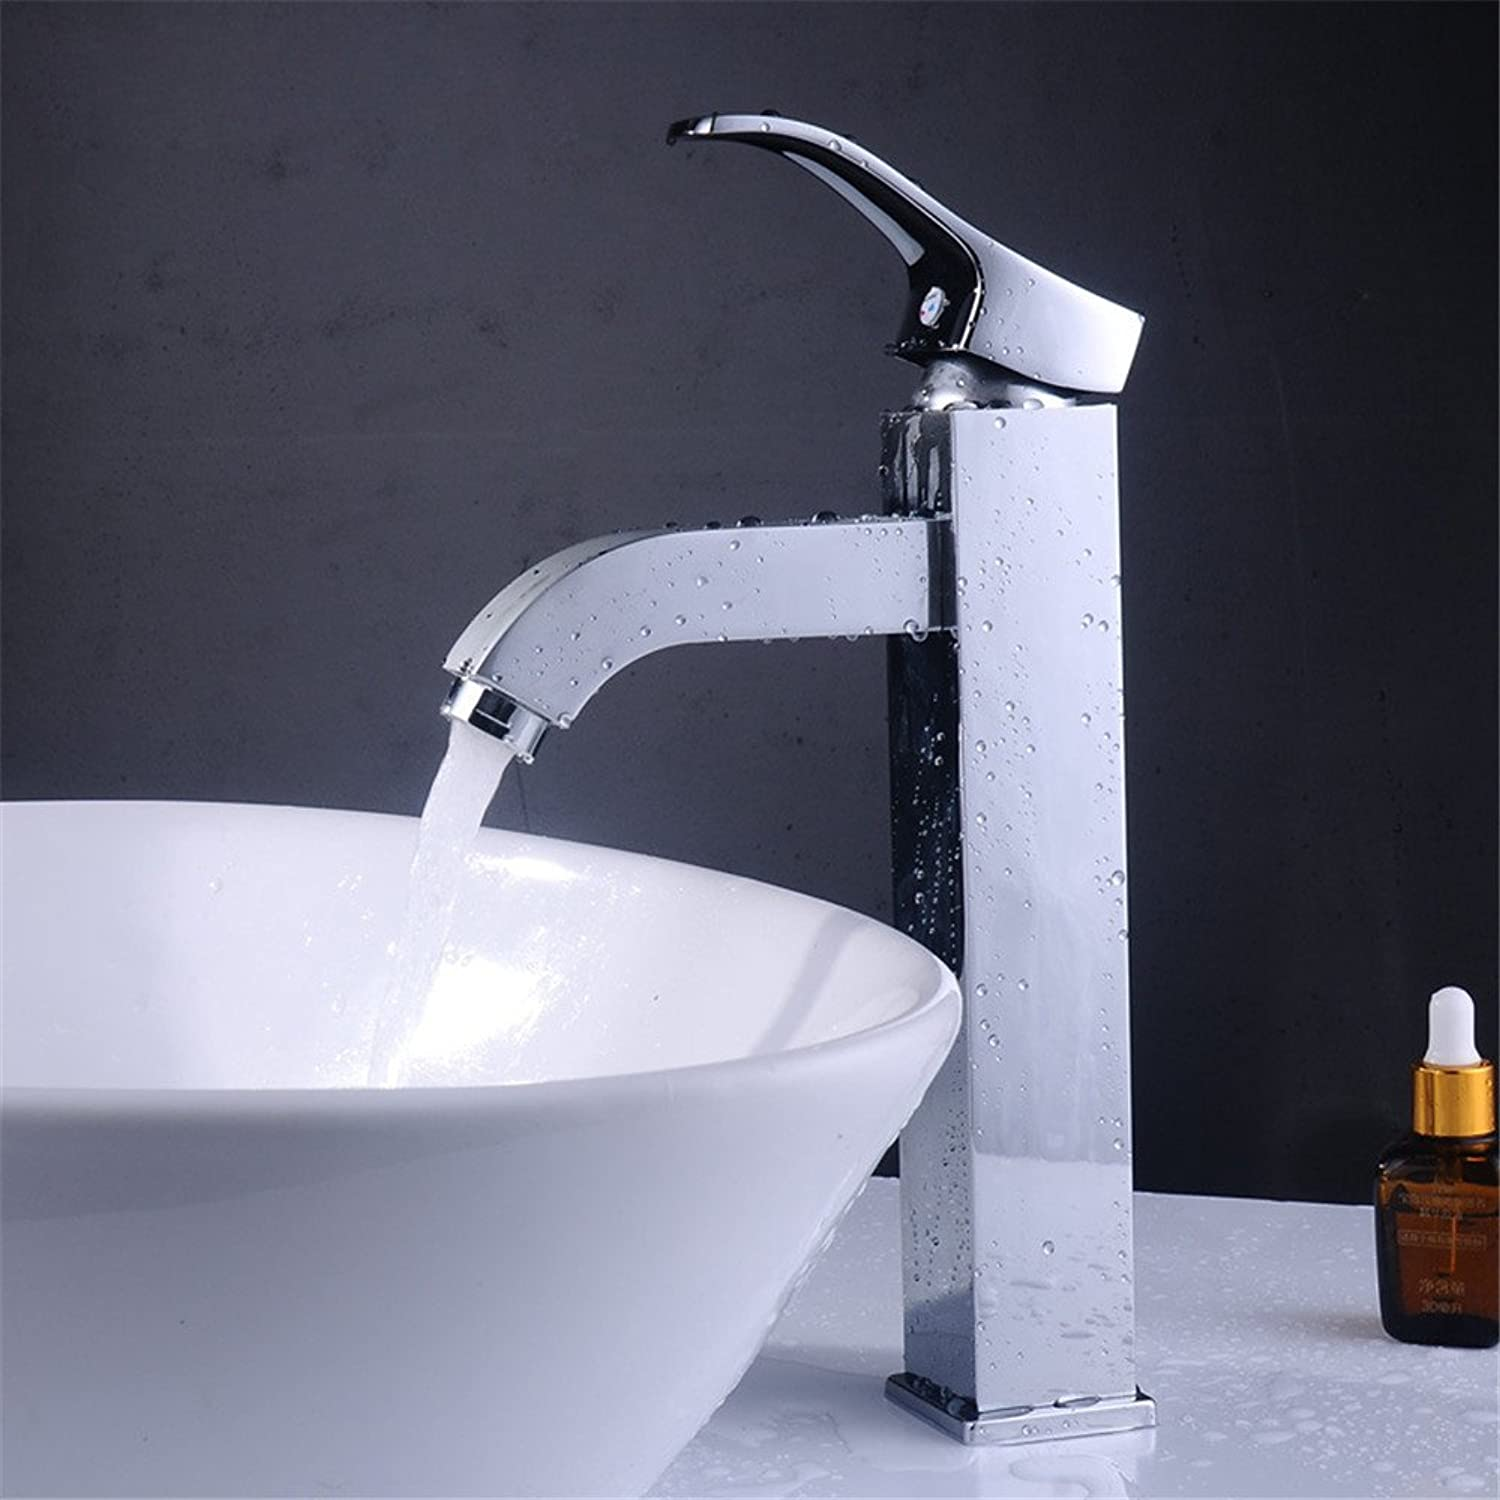 FHLYCF Basin faucet, basin head, single hole hot and cold faucet, all copper valve body, bathroom faucet